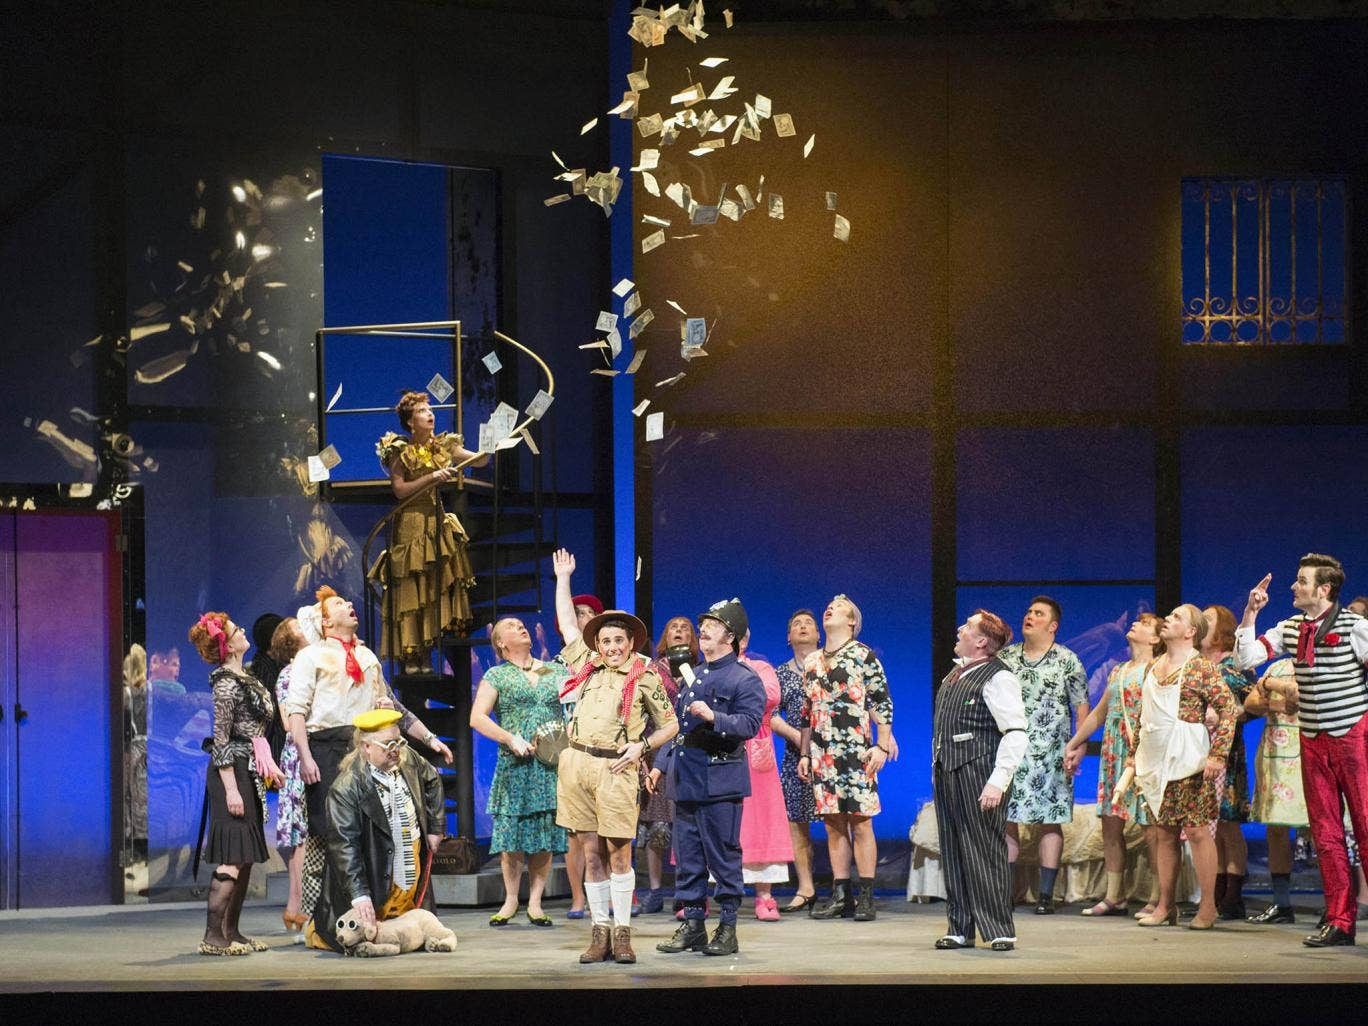 Barber Of Seville Summary : The Barber of Seville, Wales Millennium Centre, theatre review: A ...